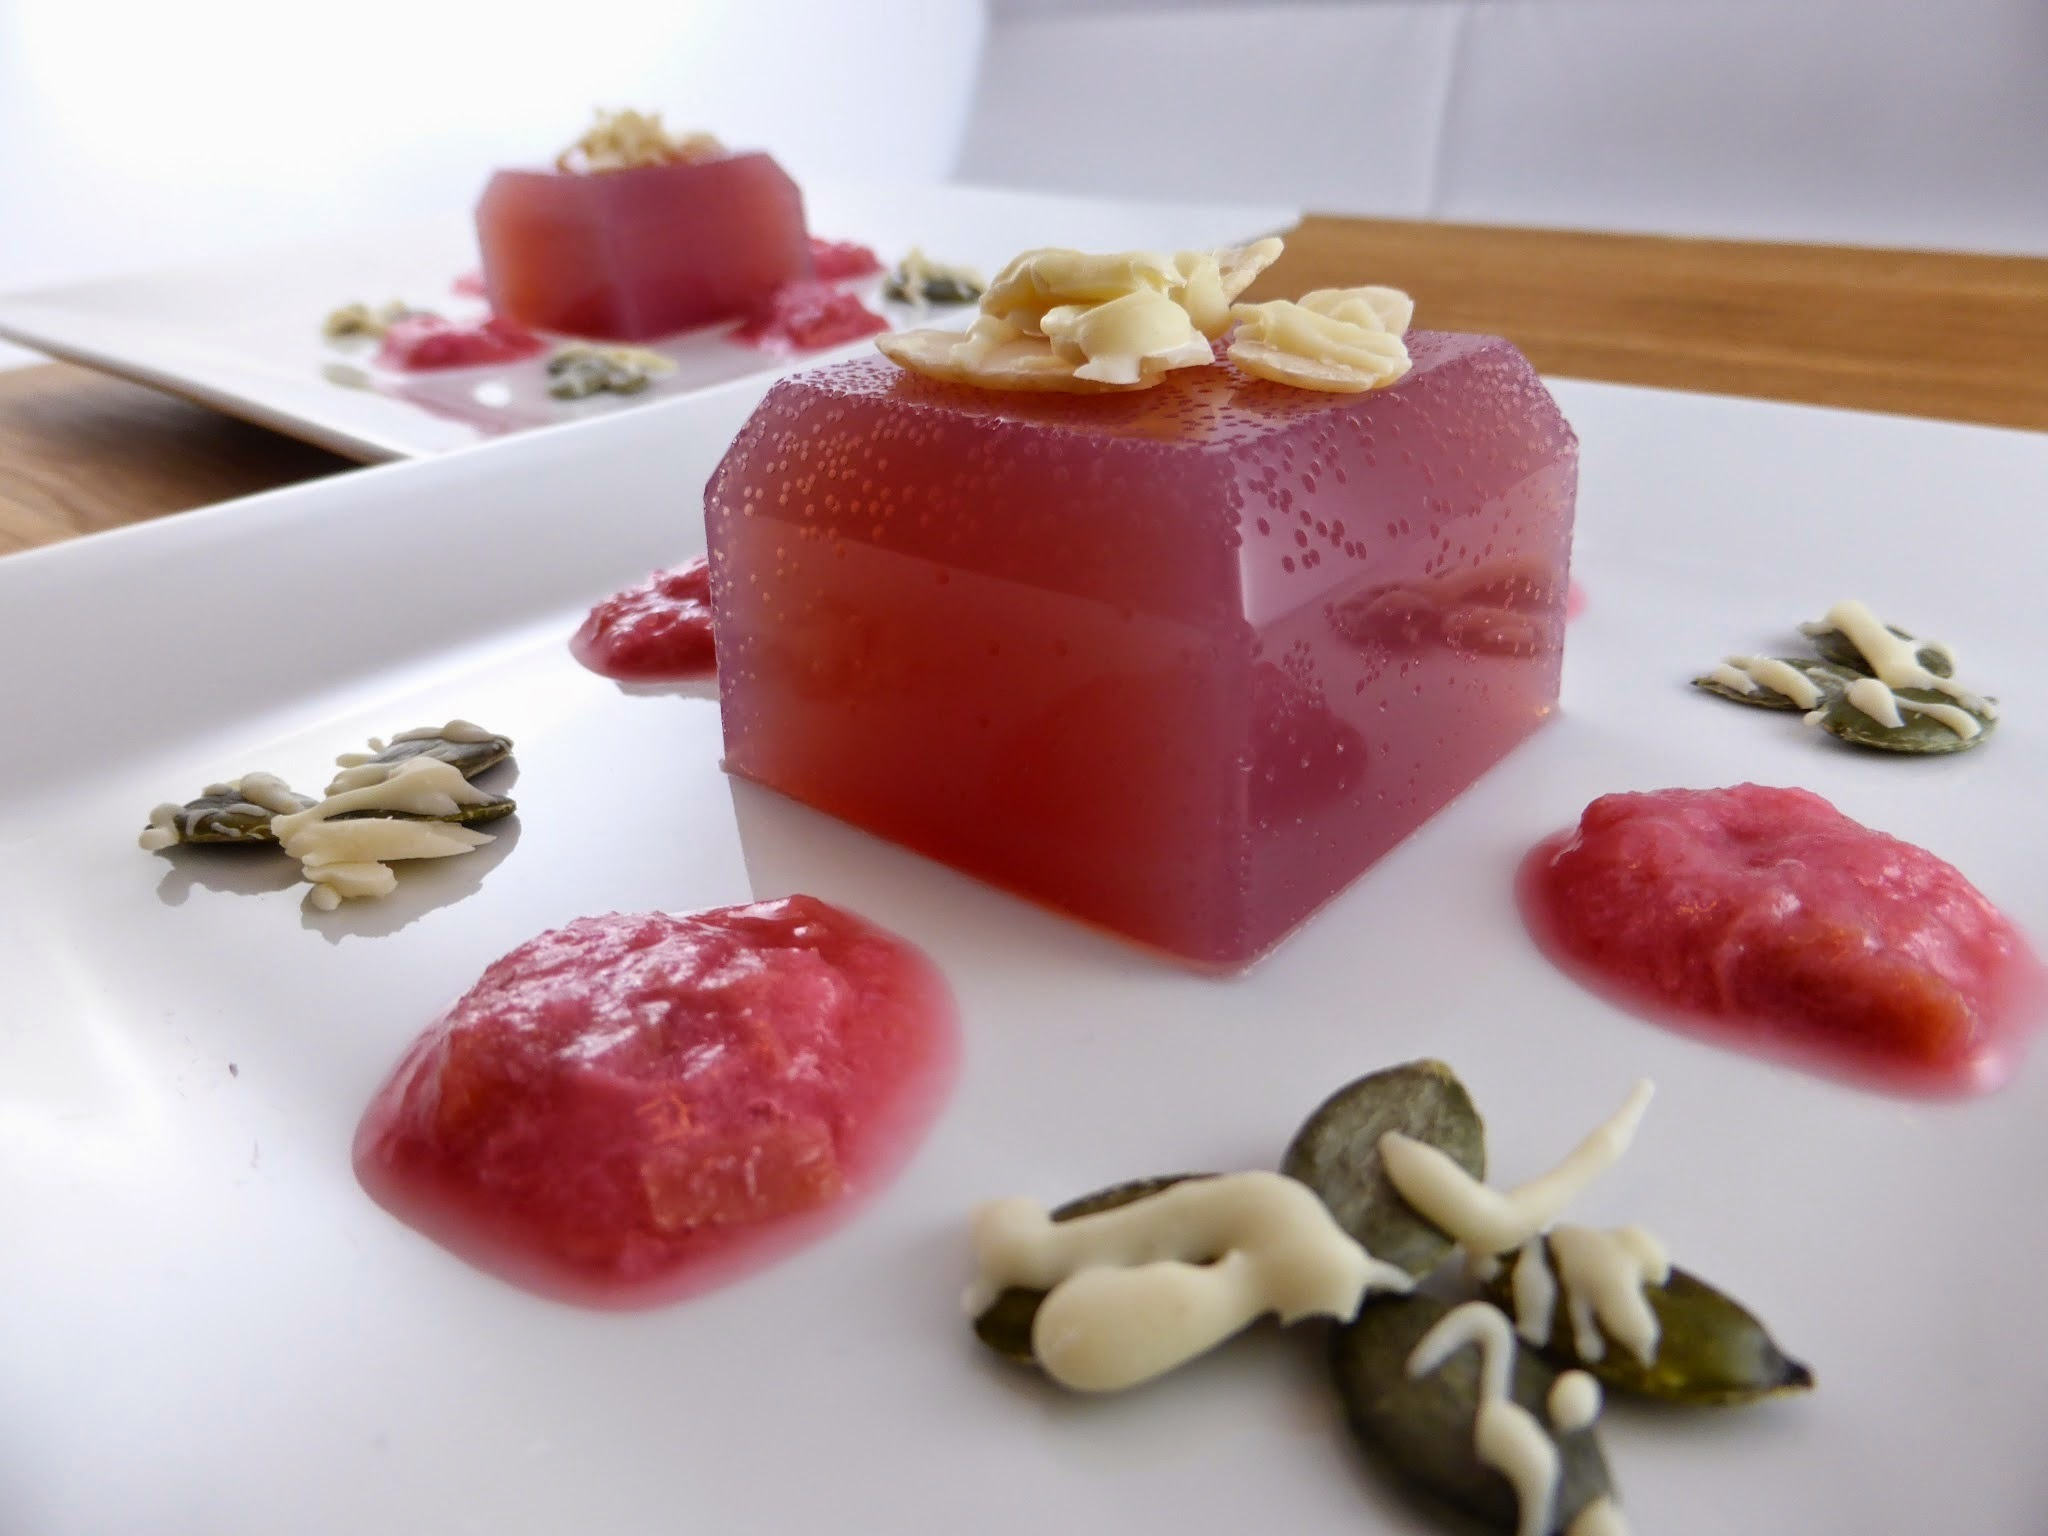 Rocket & Roses Apple & Rhubarb Sugar-Free Jelly Dessert (vegan, gluten-free, sugar-free)